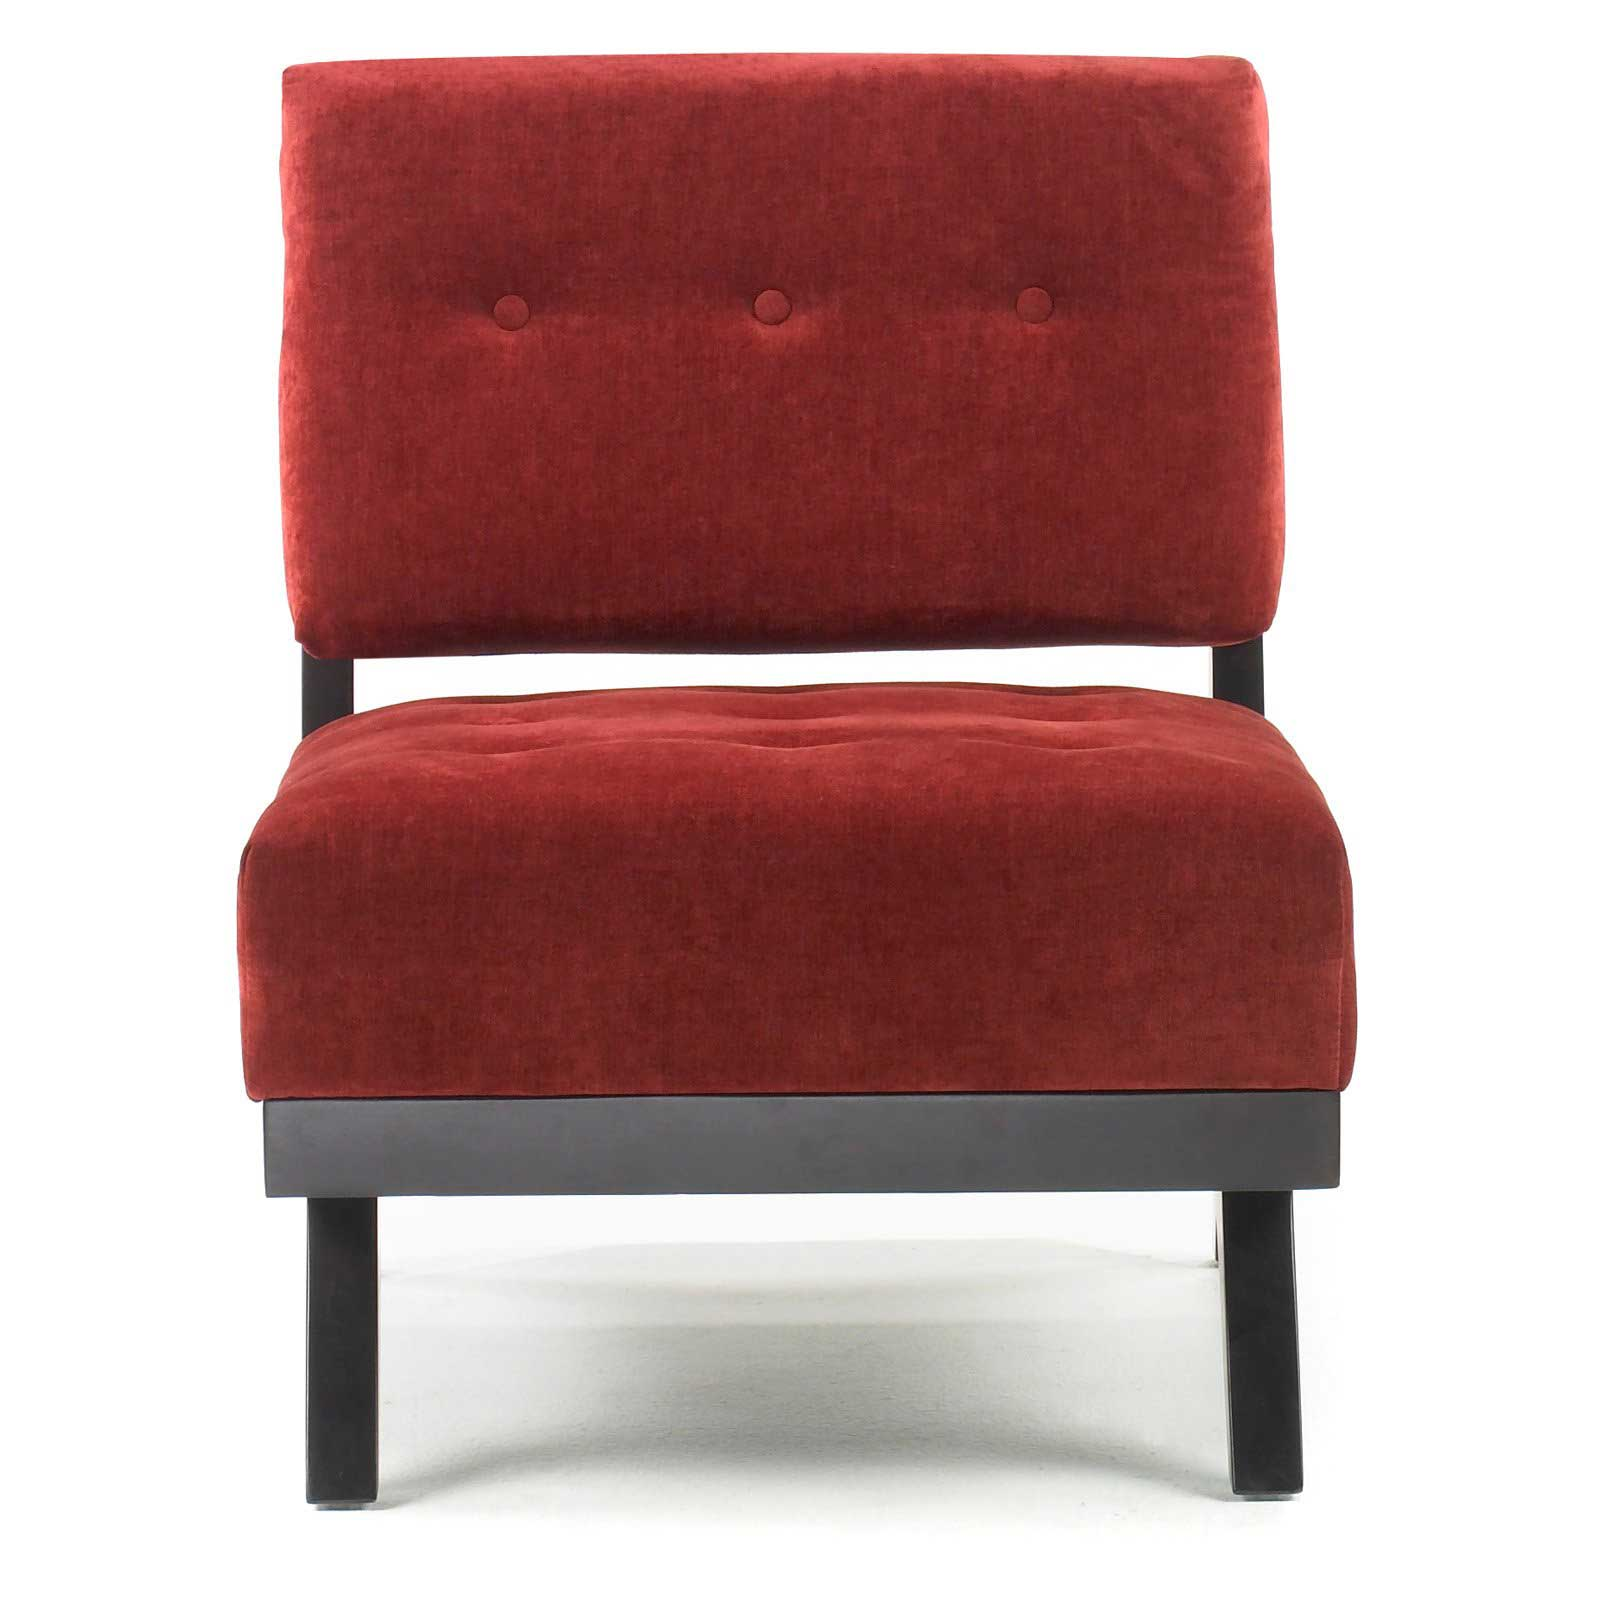 Armen Armless Red Leather Club Chair